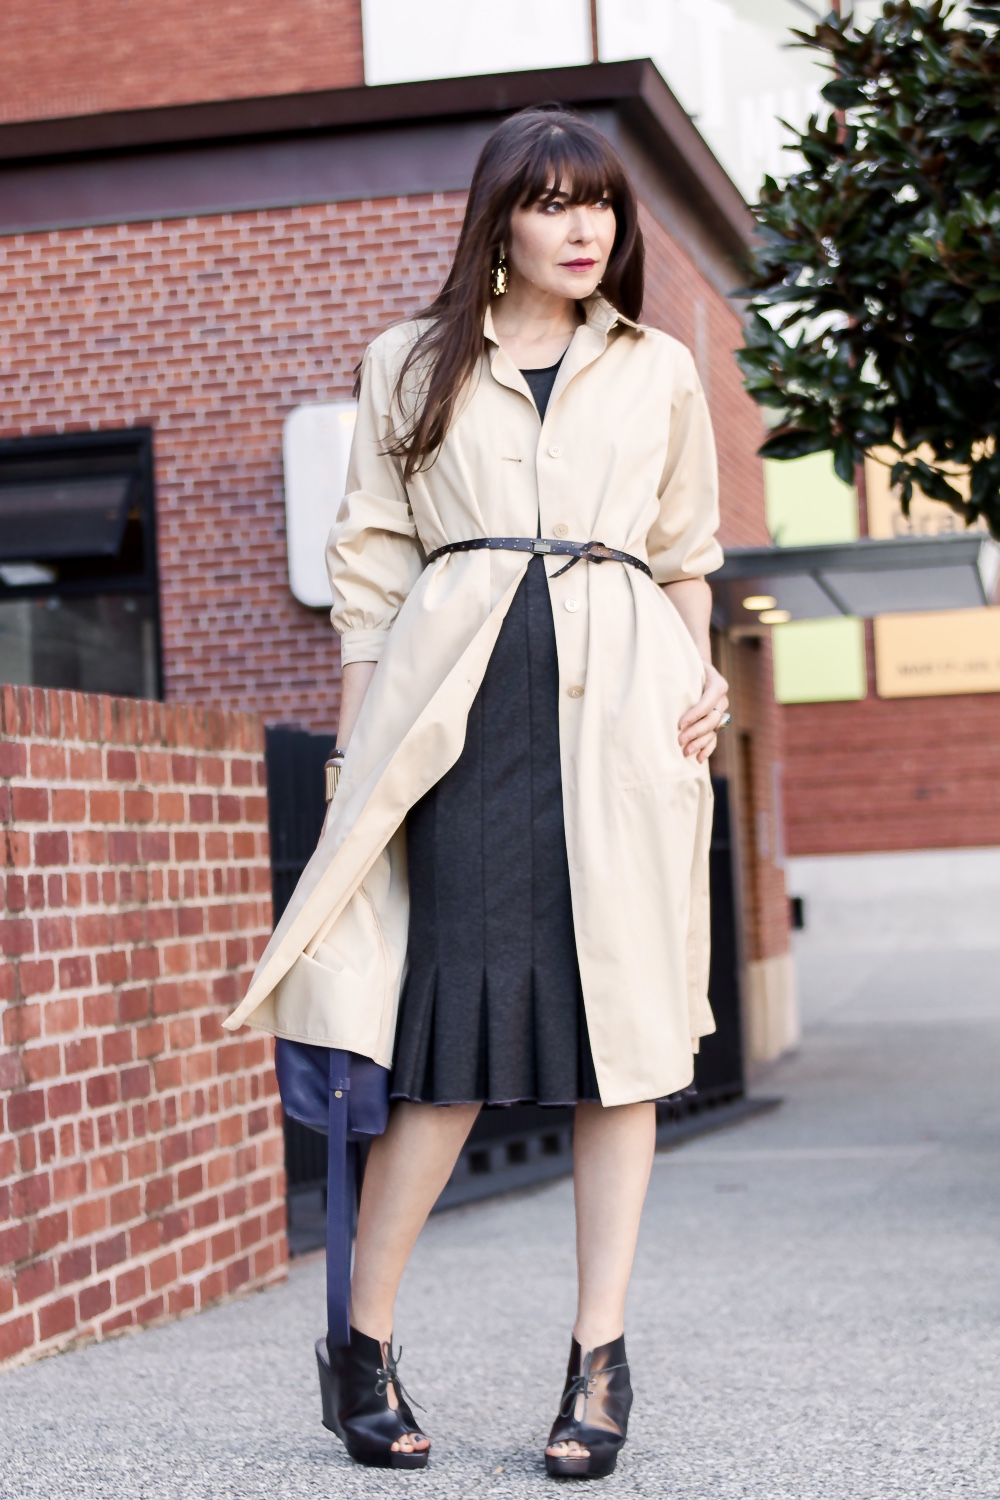 Courreges duster and Kajan Cake dress